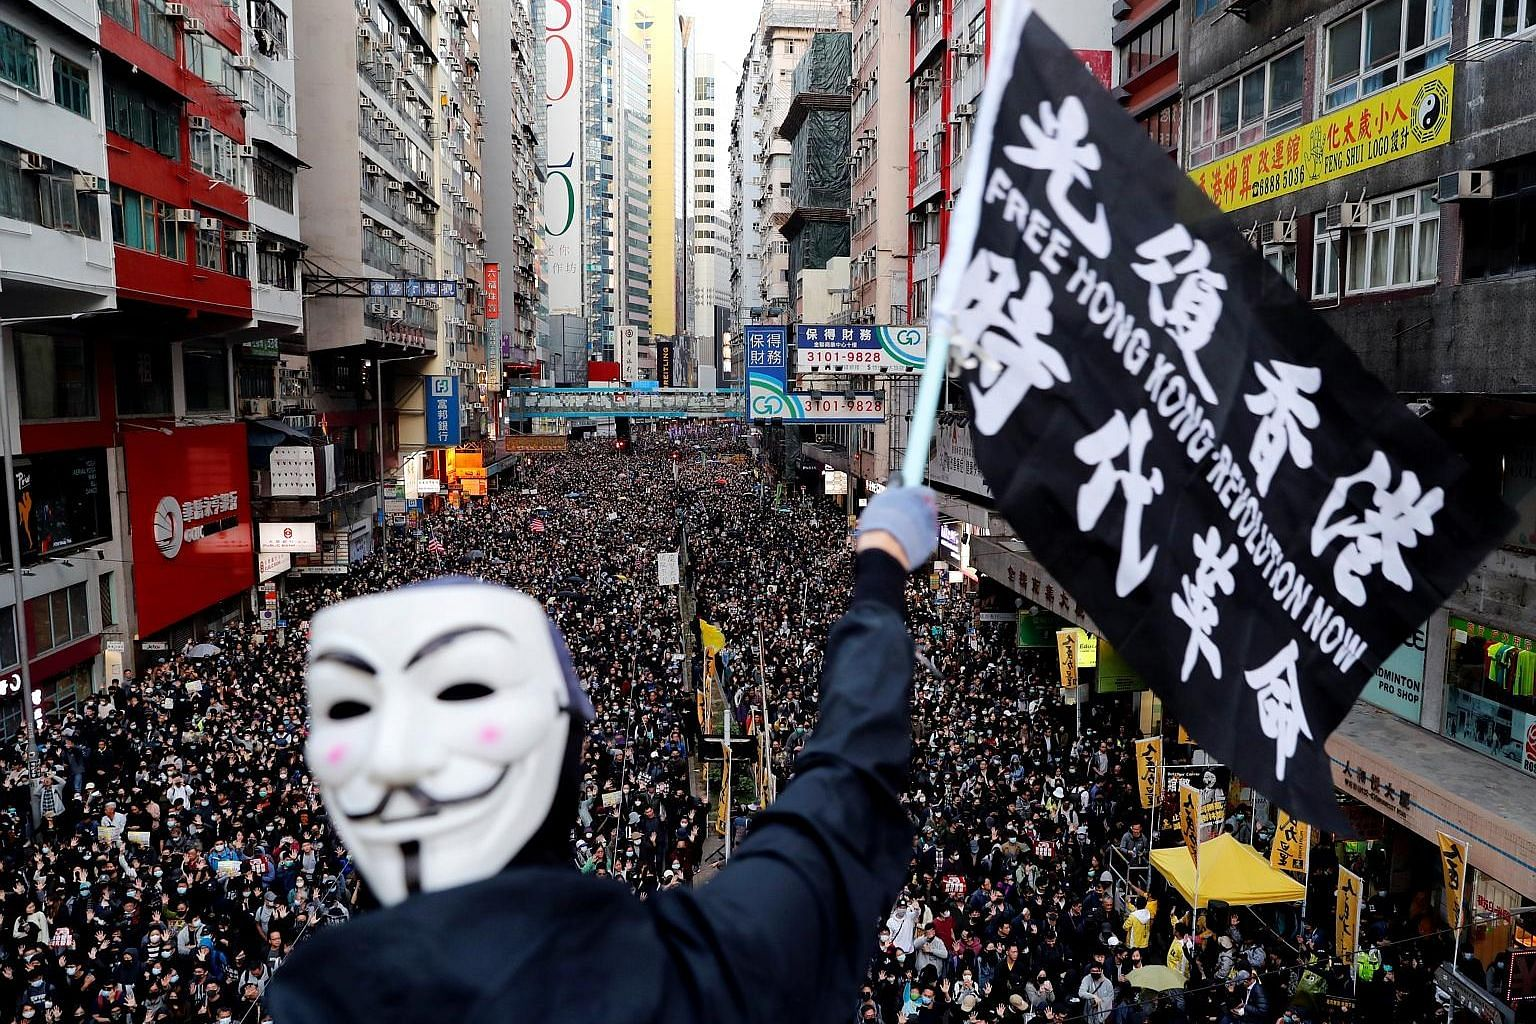 People marching in Hong Kong yesterday. The rally, which began around 3pm, went smoothly but tensions notched up at night when hundreds of protesters in face masks and helmets started building barricades in areas such as Central and Causeway Bay to s